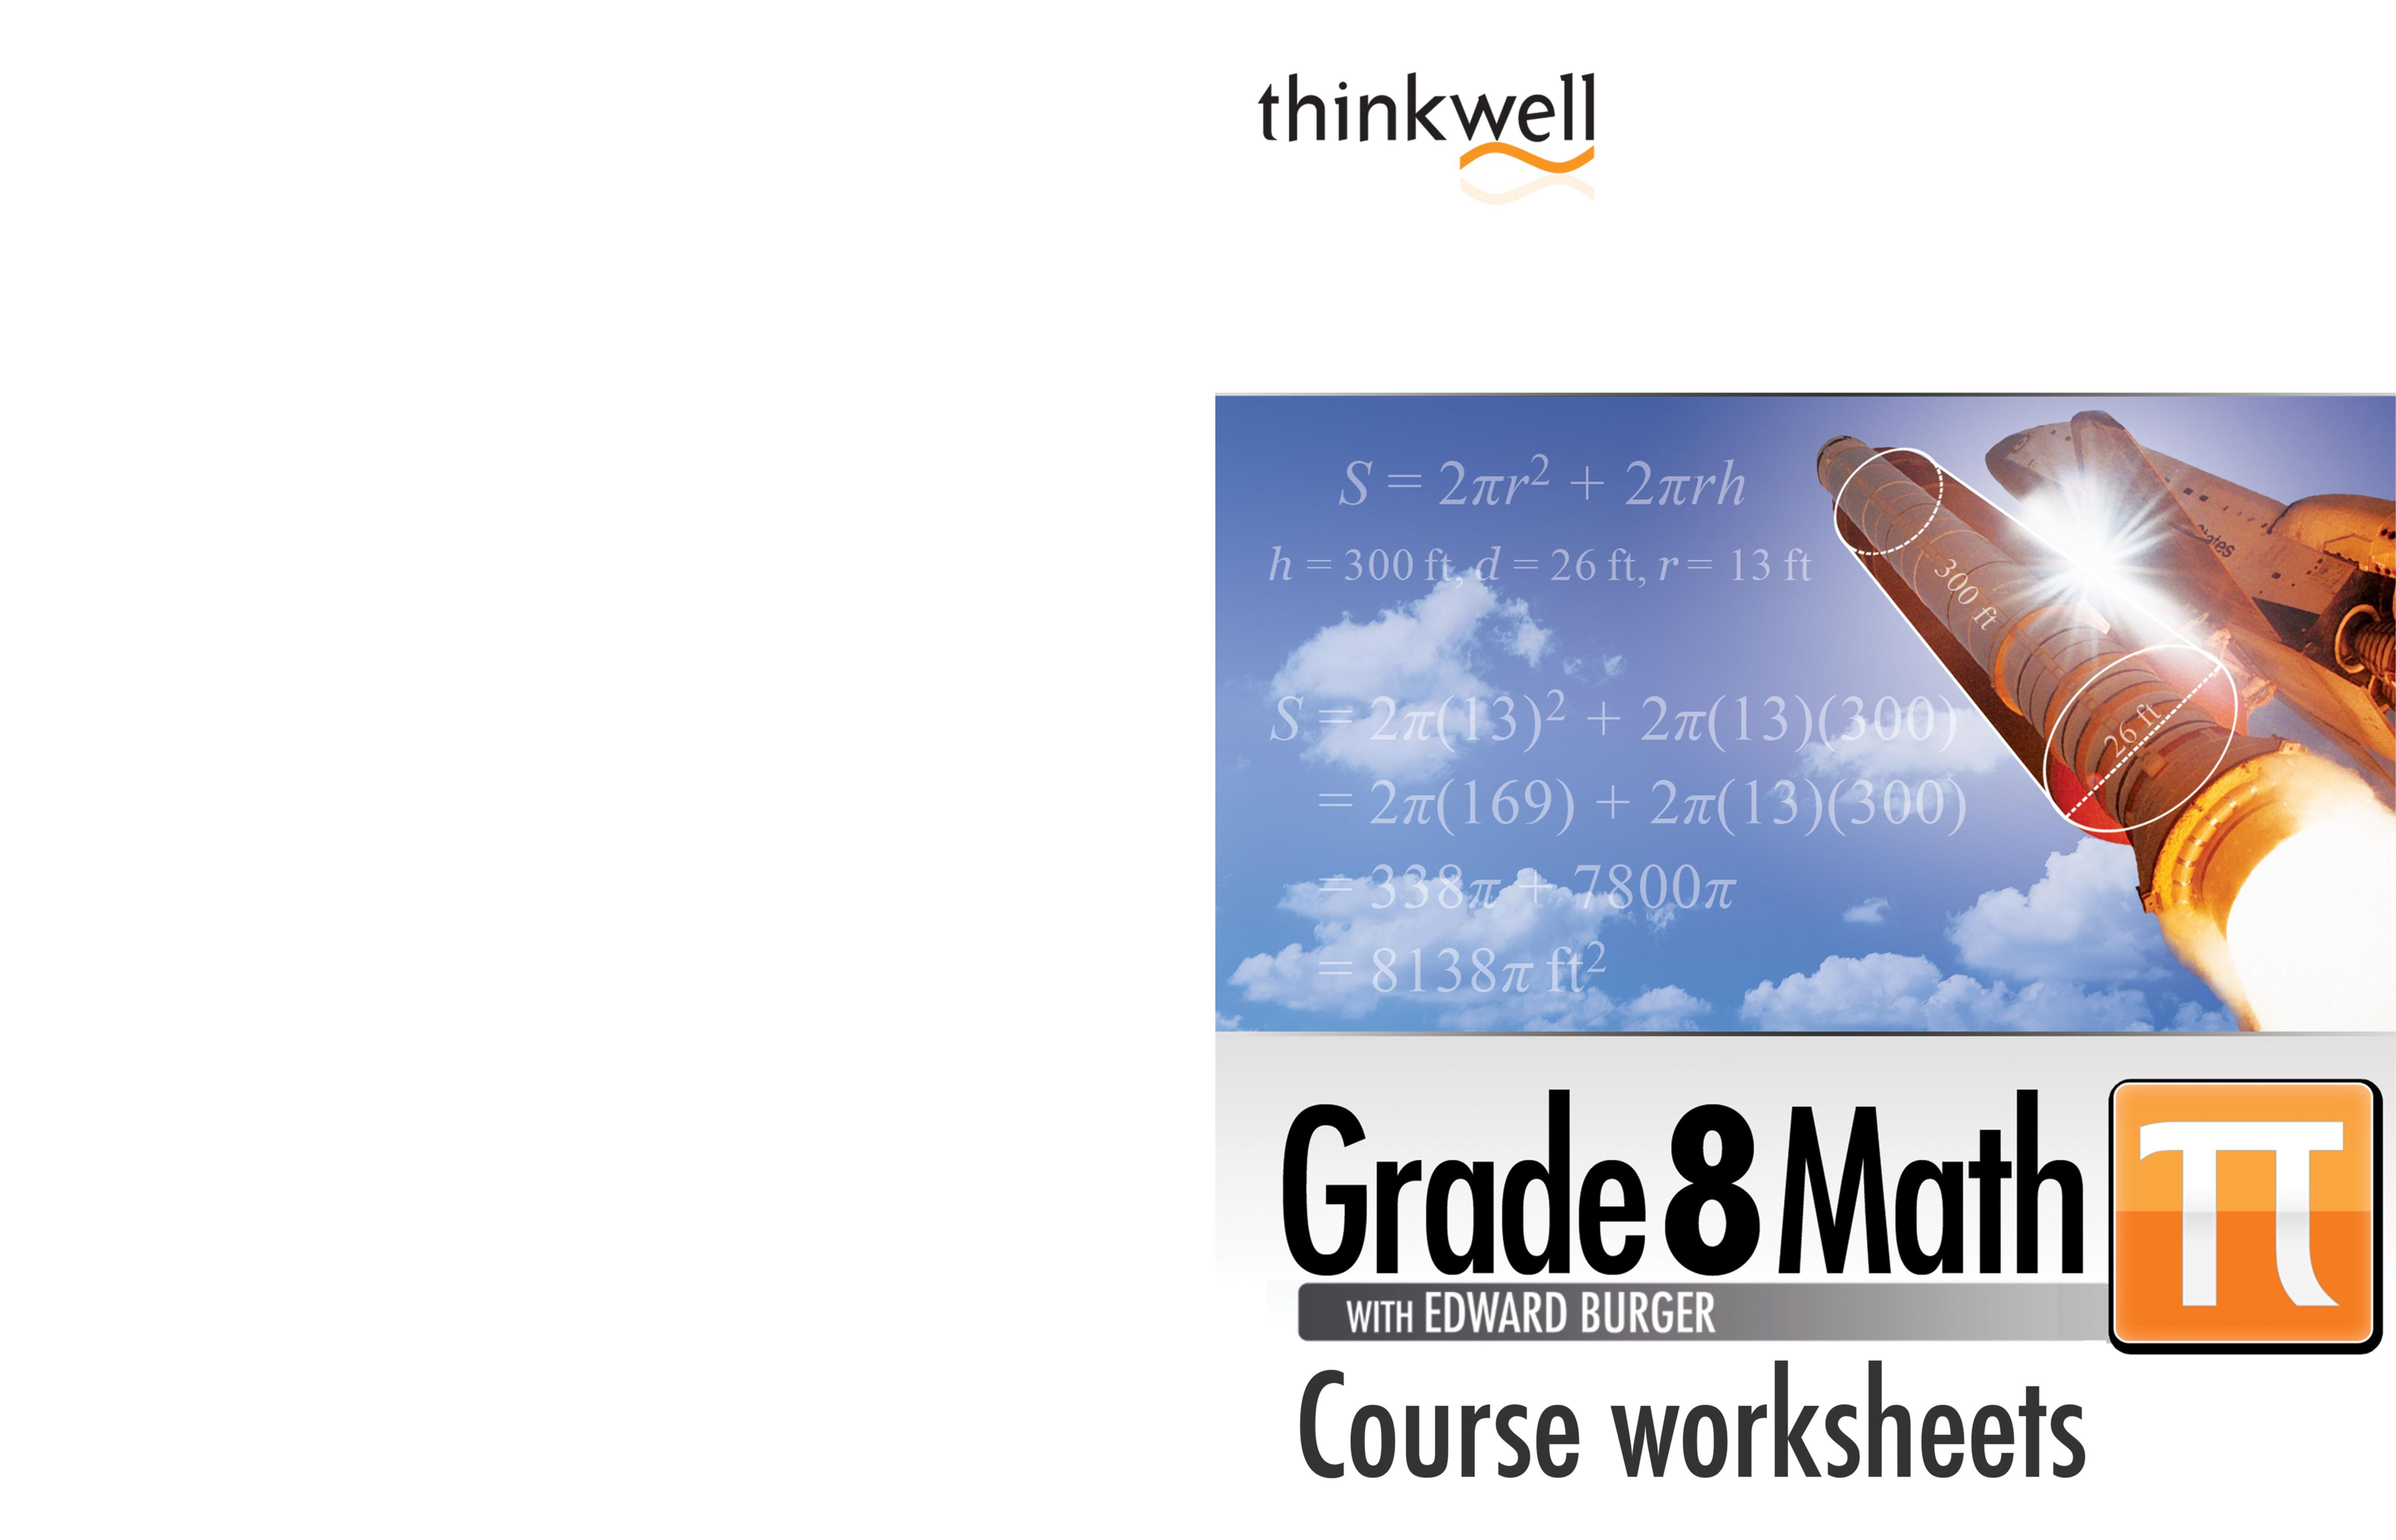 thinkwell grade 8 math worksheets and answer keys by thinkwell corp 9781605380896. Black Bedroom Furniture Sets. Home Design Ideas